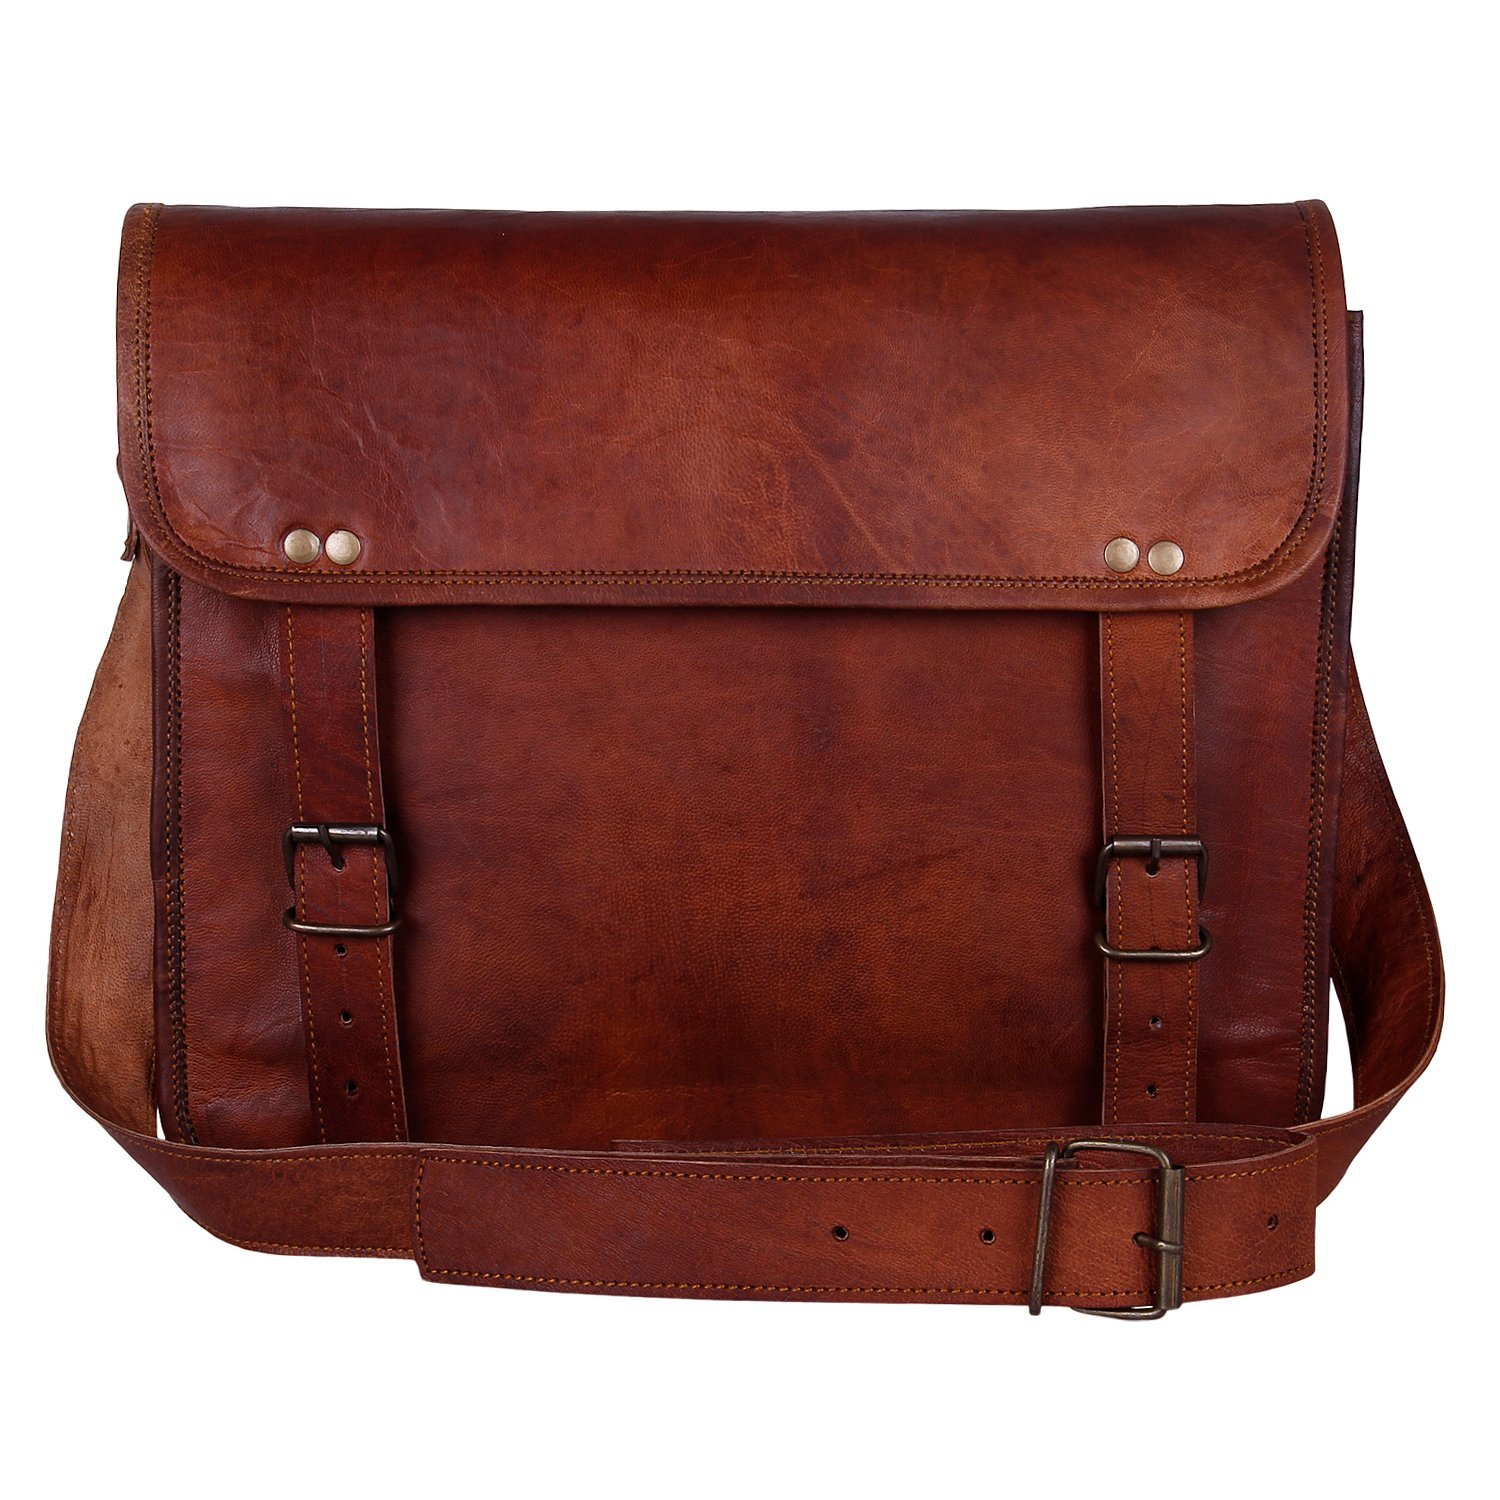 "Rustic Round 13"" genuine leather laptop bag"